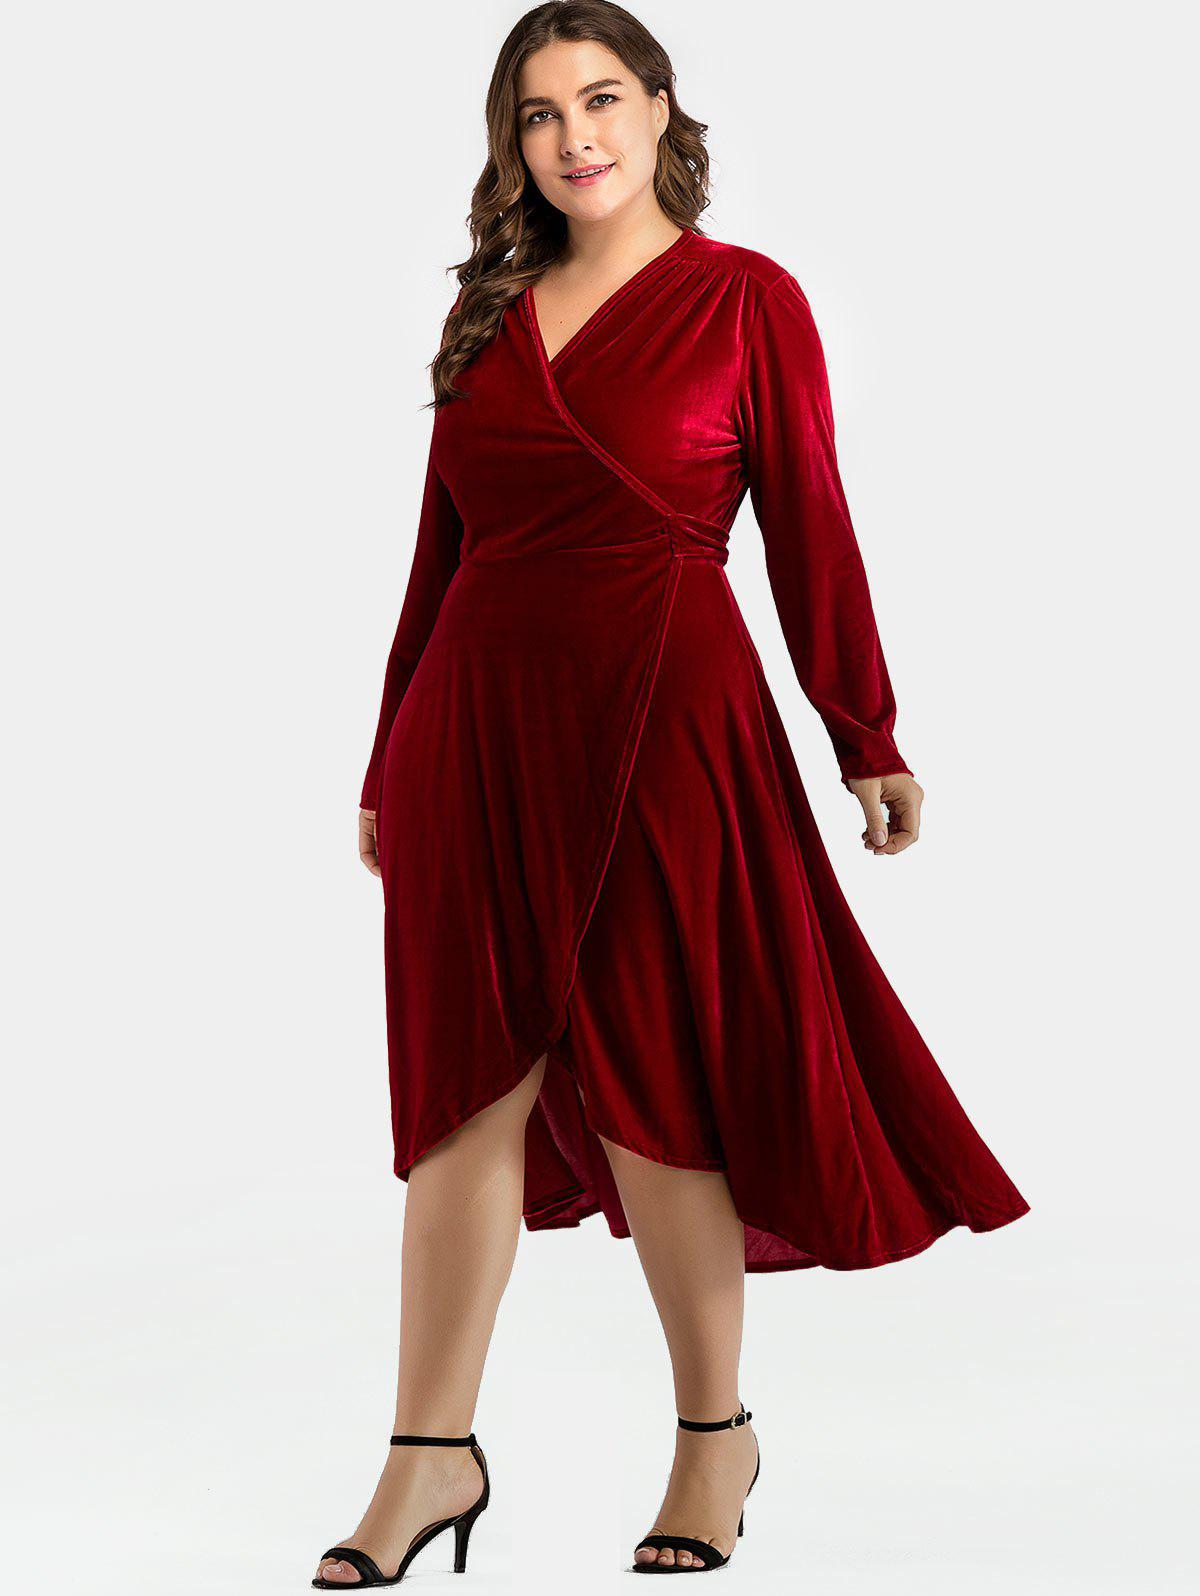 46 Off Surplice Neck Plus Size Velvet Wrap Dress Rosegal